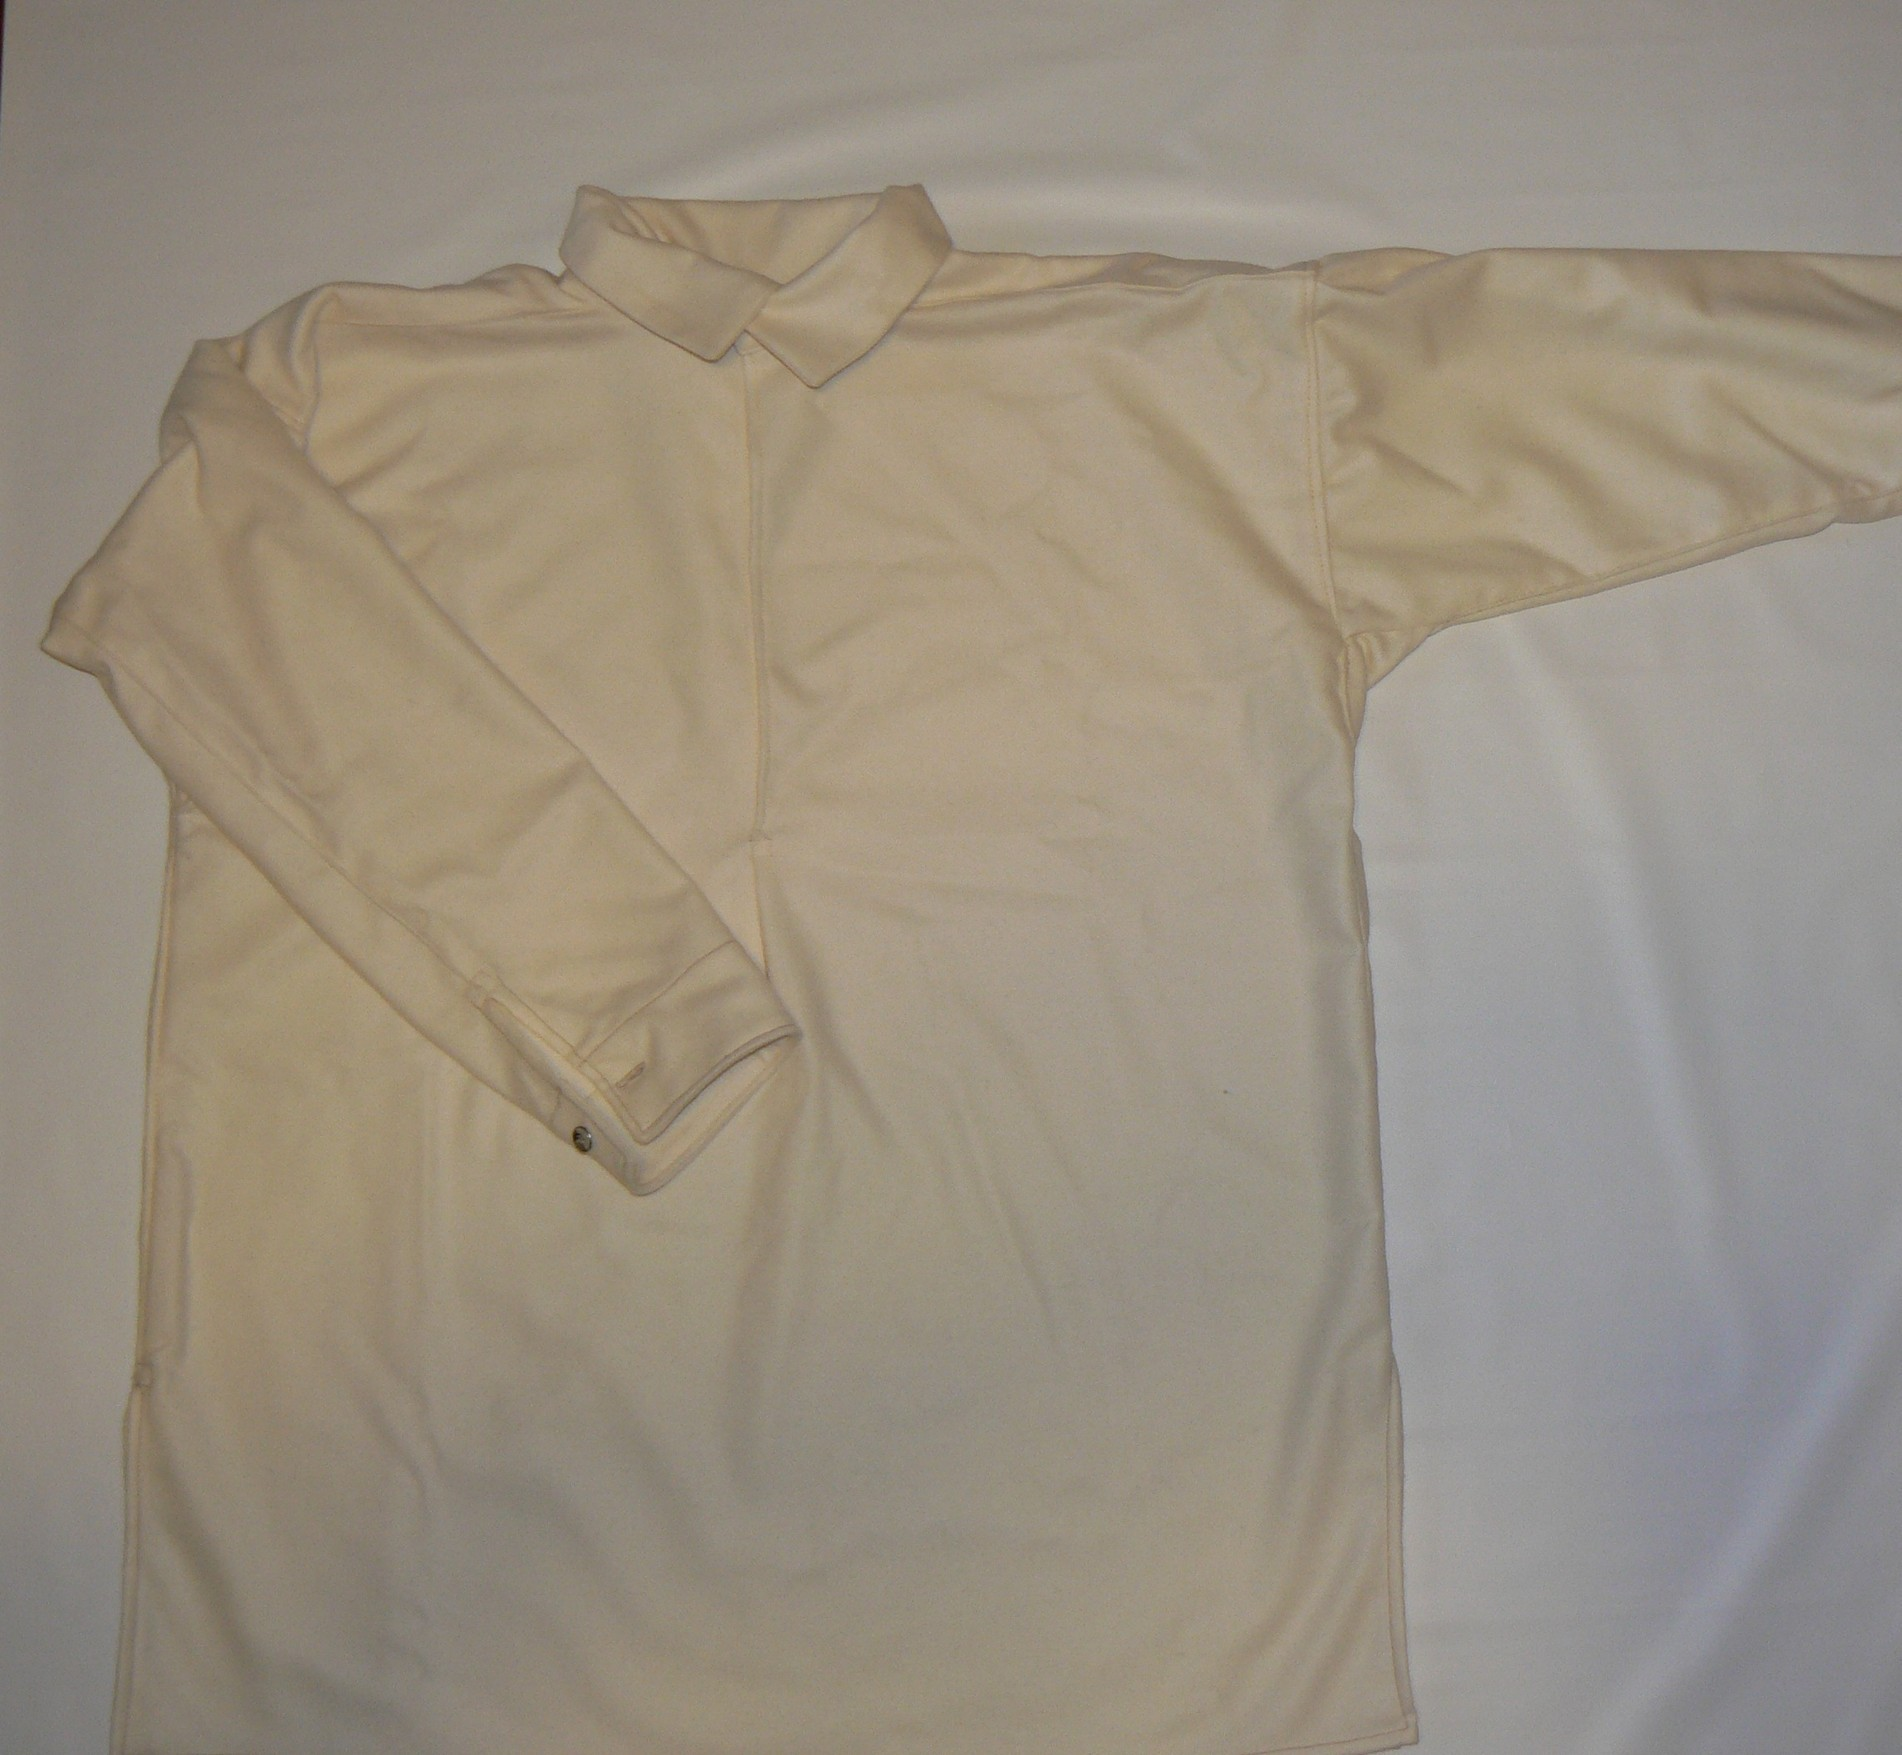 Issued Muslin Shirt